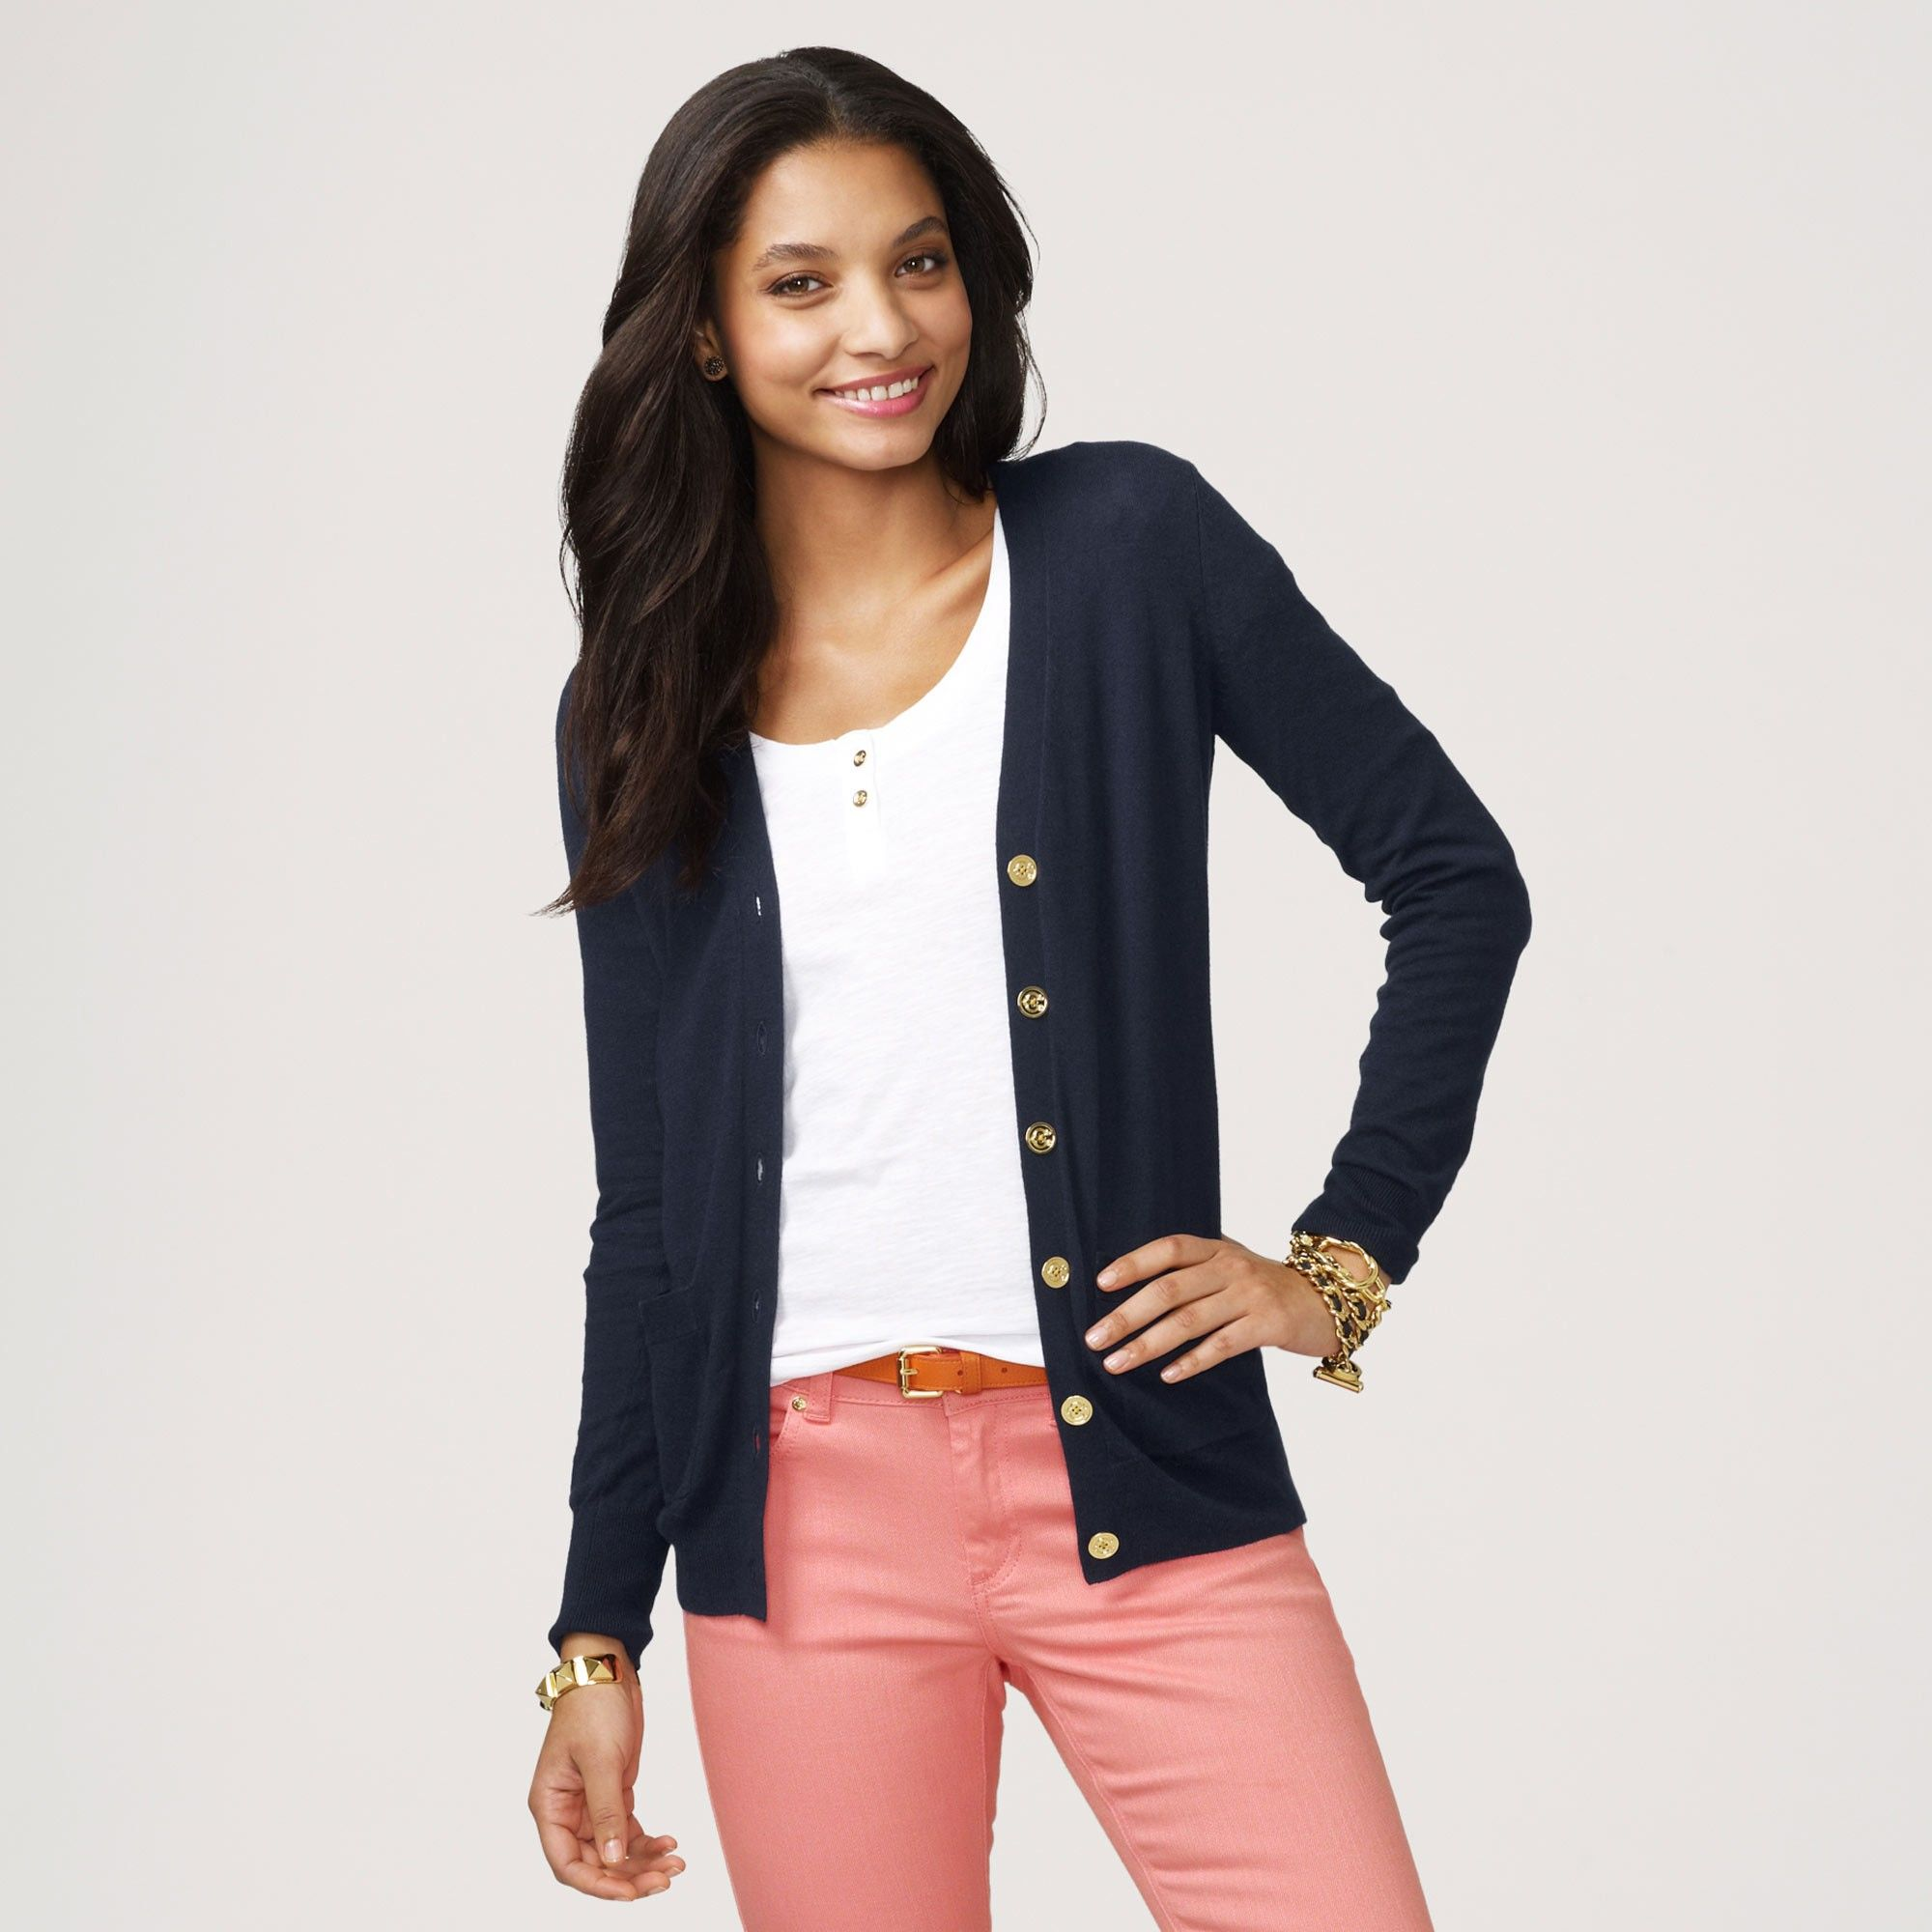 Women's Cardigans - Class Cardigan With Gold Buttons | Colored ...